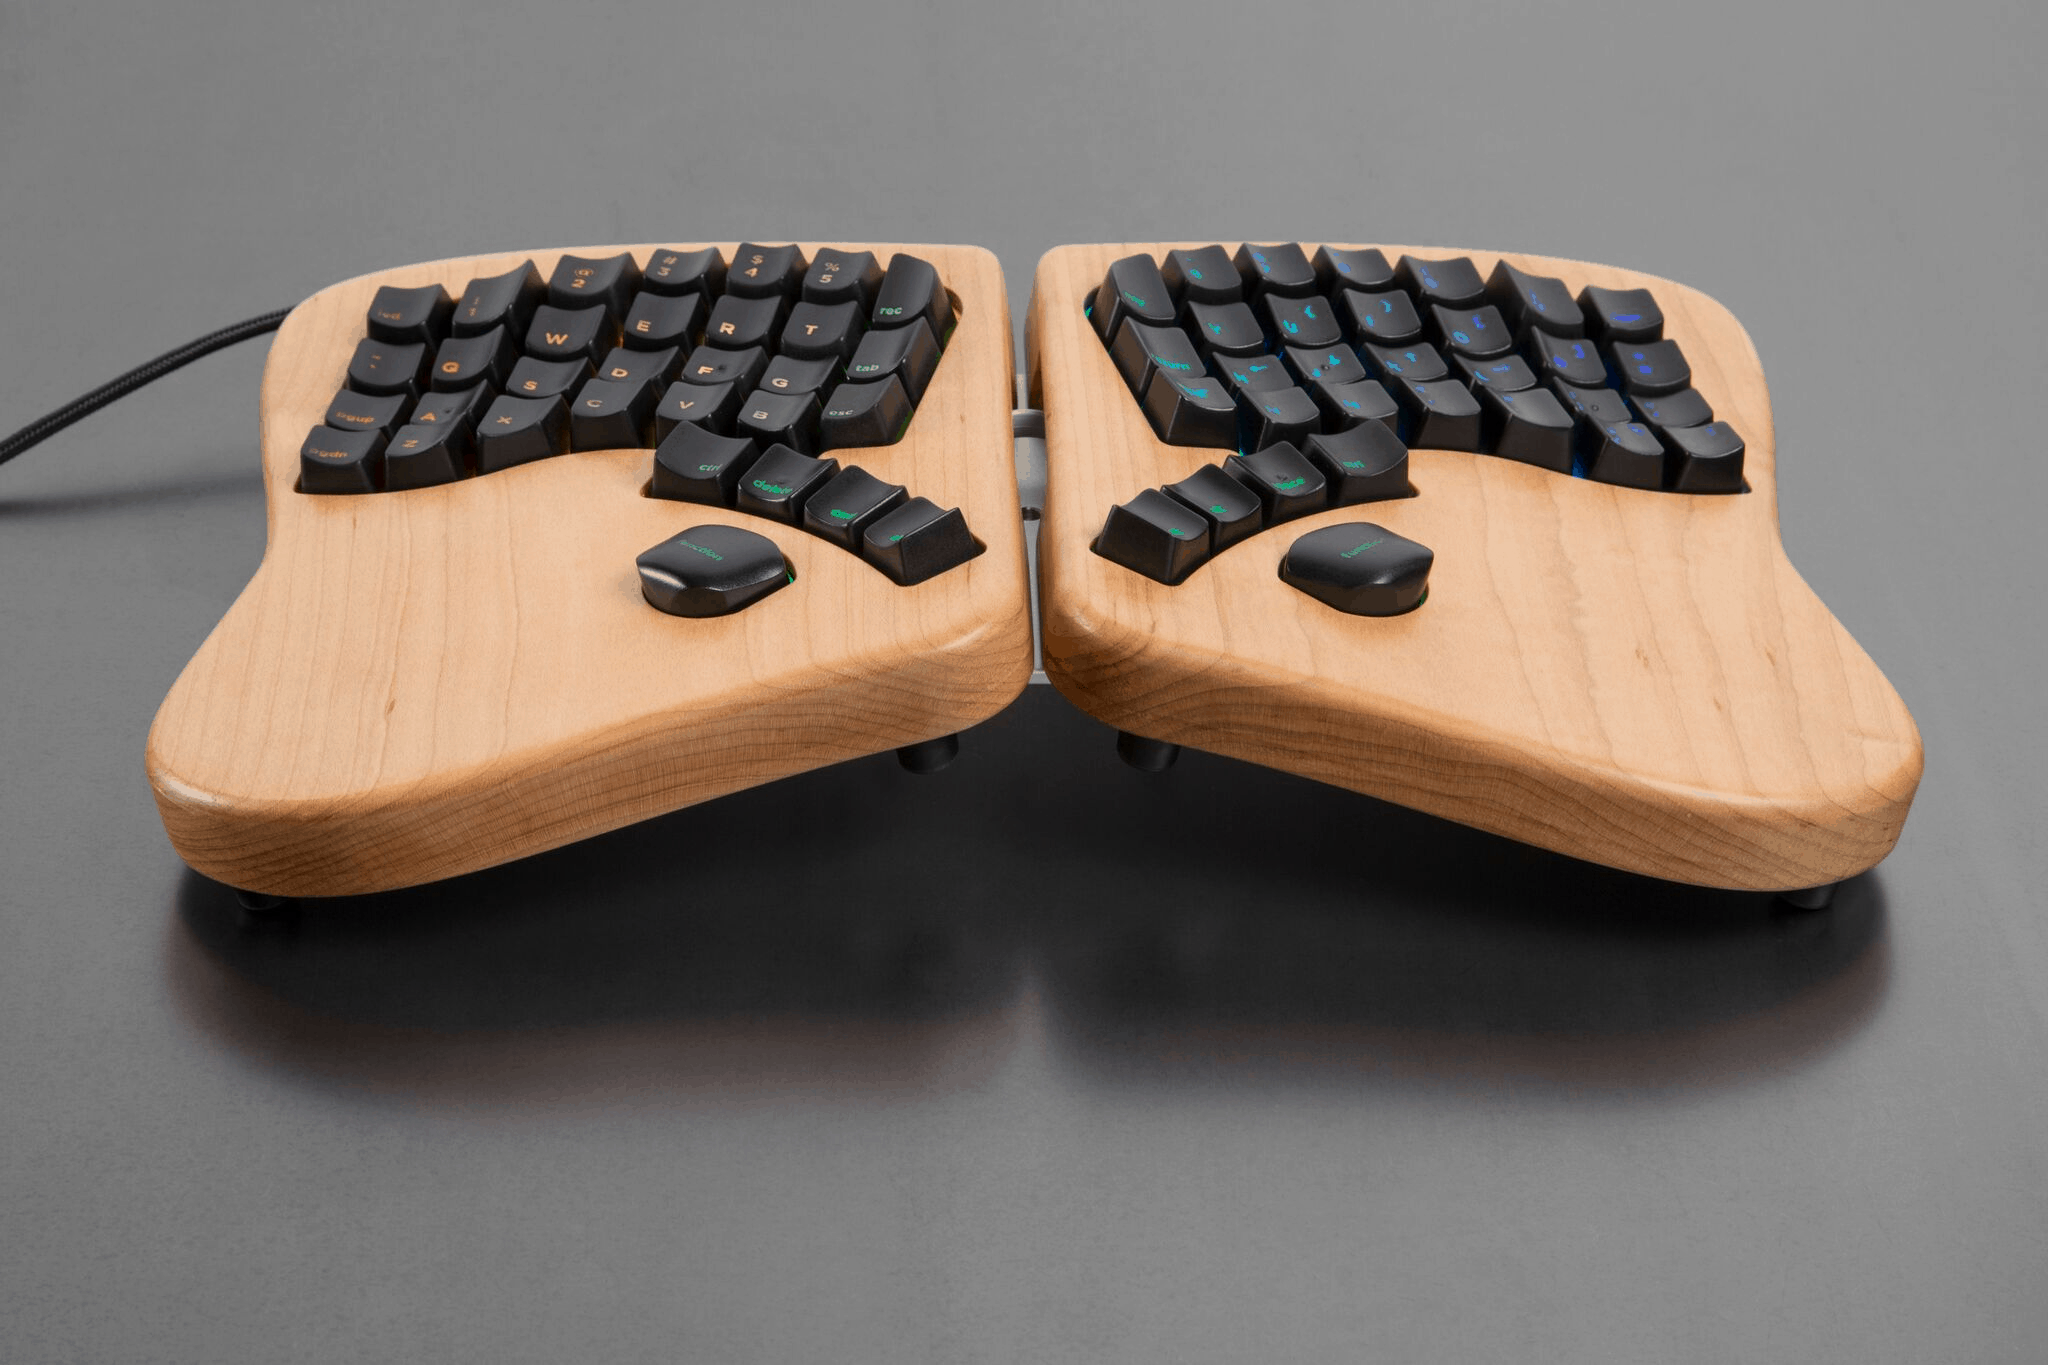 49cf9769c5b Keyboardio is a small company. So far as I know, the company has two  regular employees, the founders Jesse Vincent and Kaia Dekker.